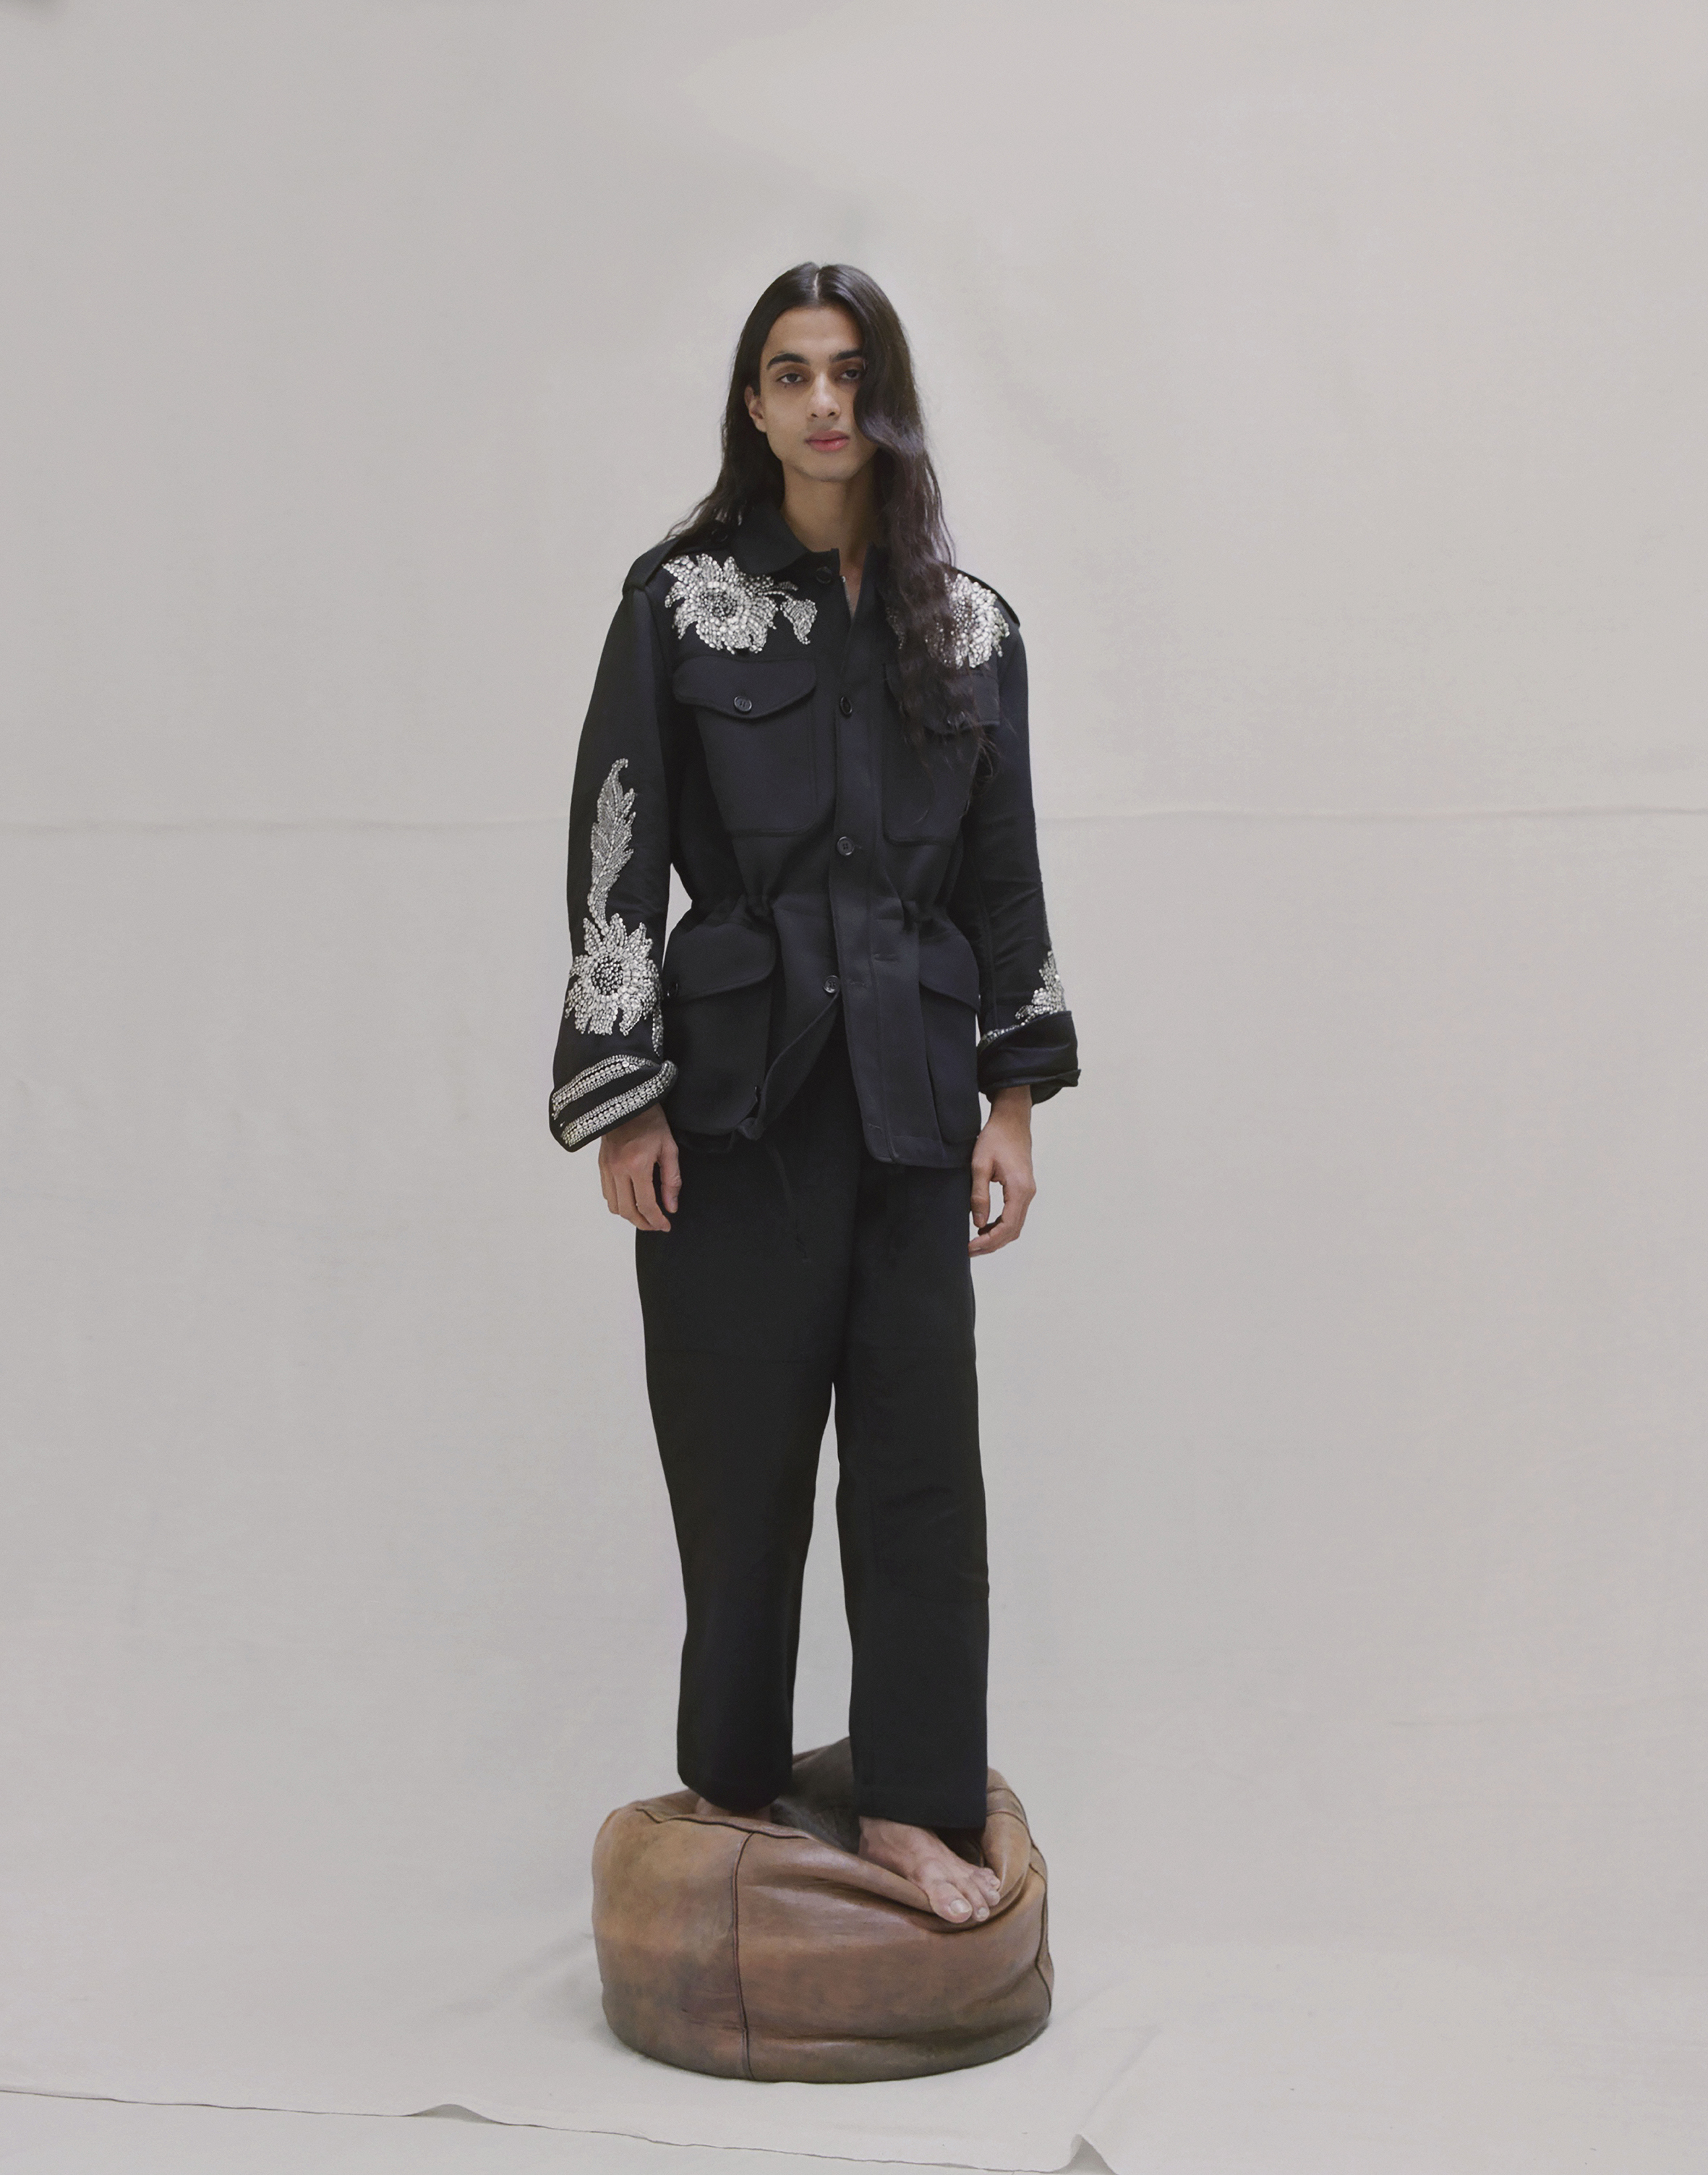 Sequin embroidered military jacket and trousers ALEXANDER MCQUEEN.